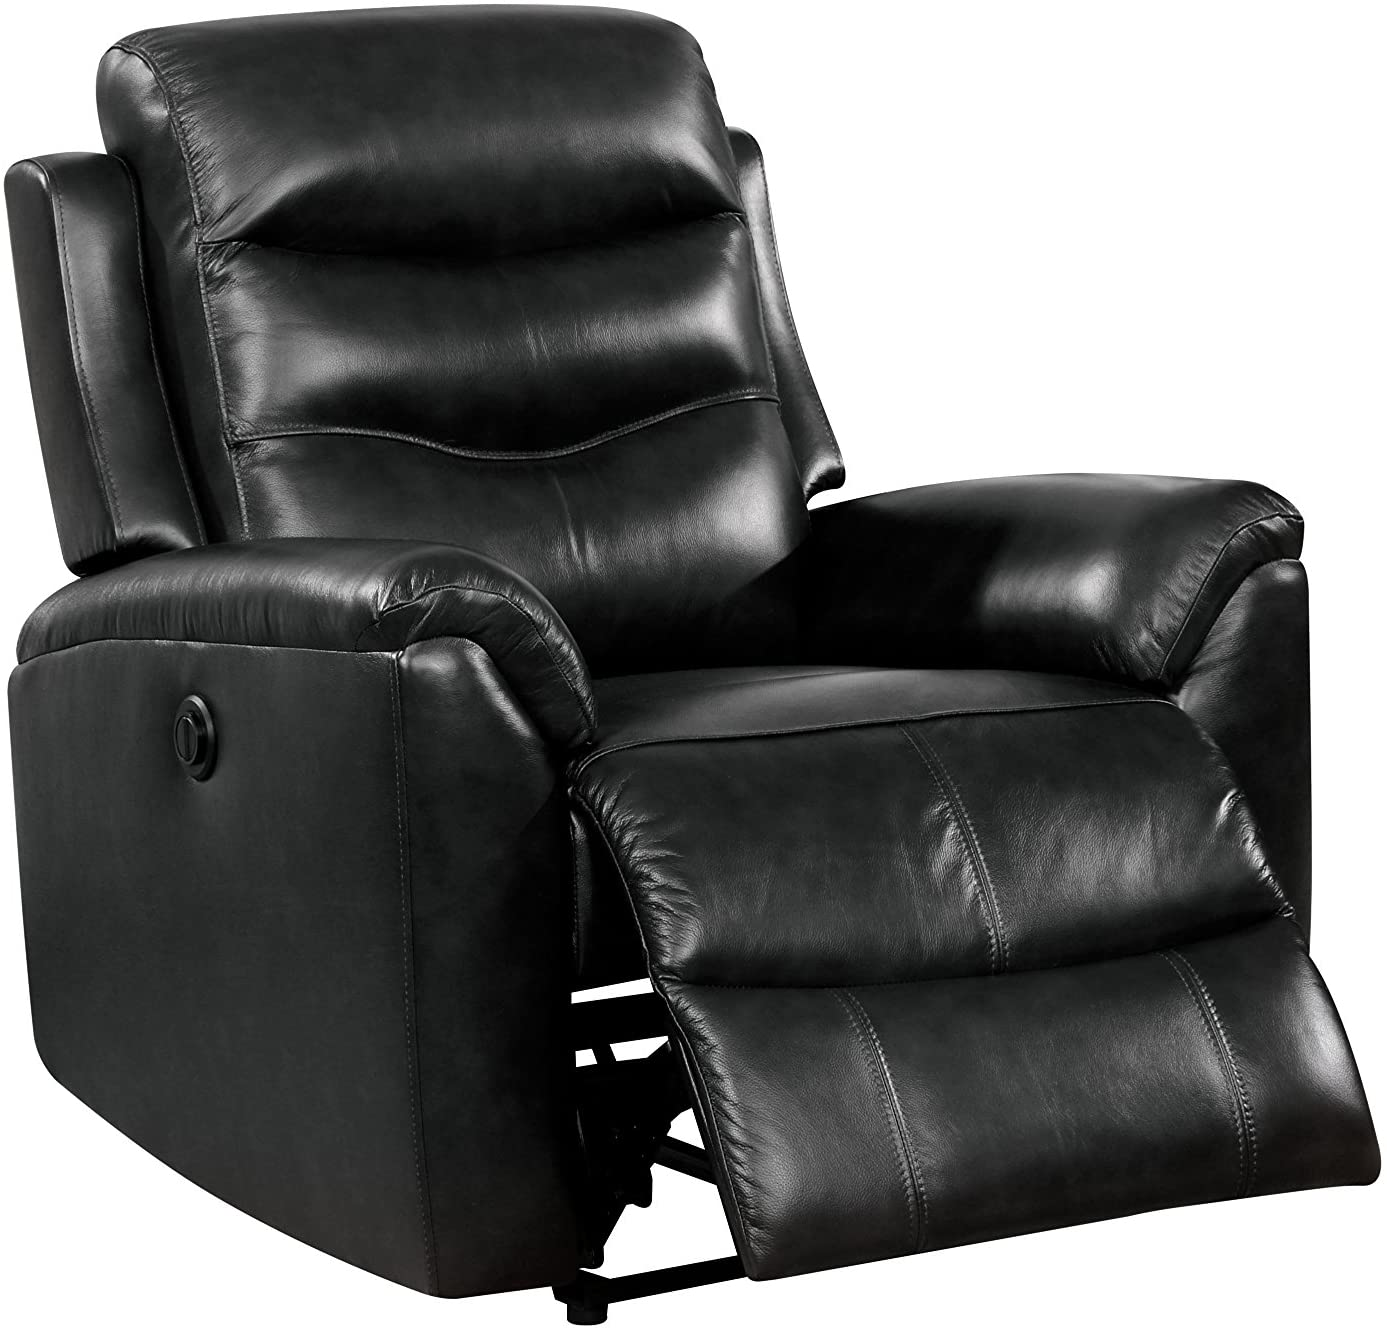 Lena Black Leather Recliner